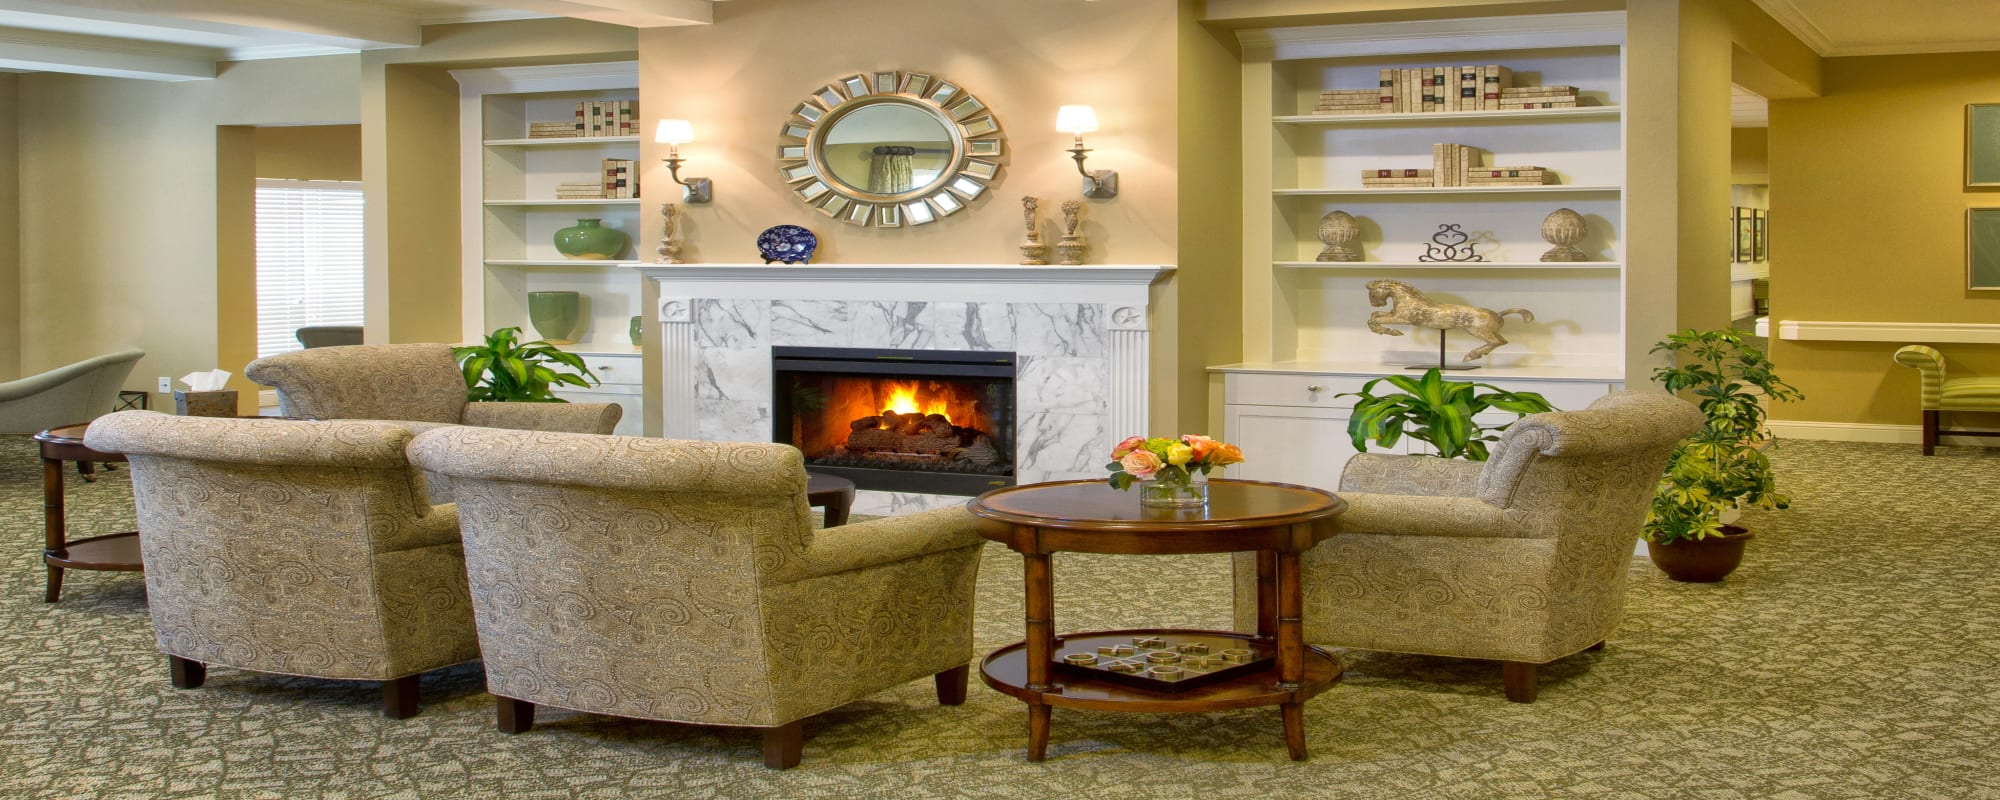 Village on the Park Friendswood - Live Life Well TV